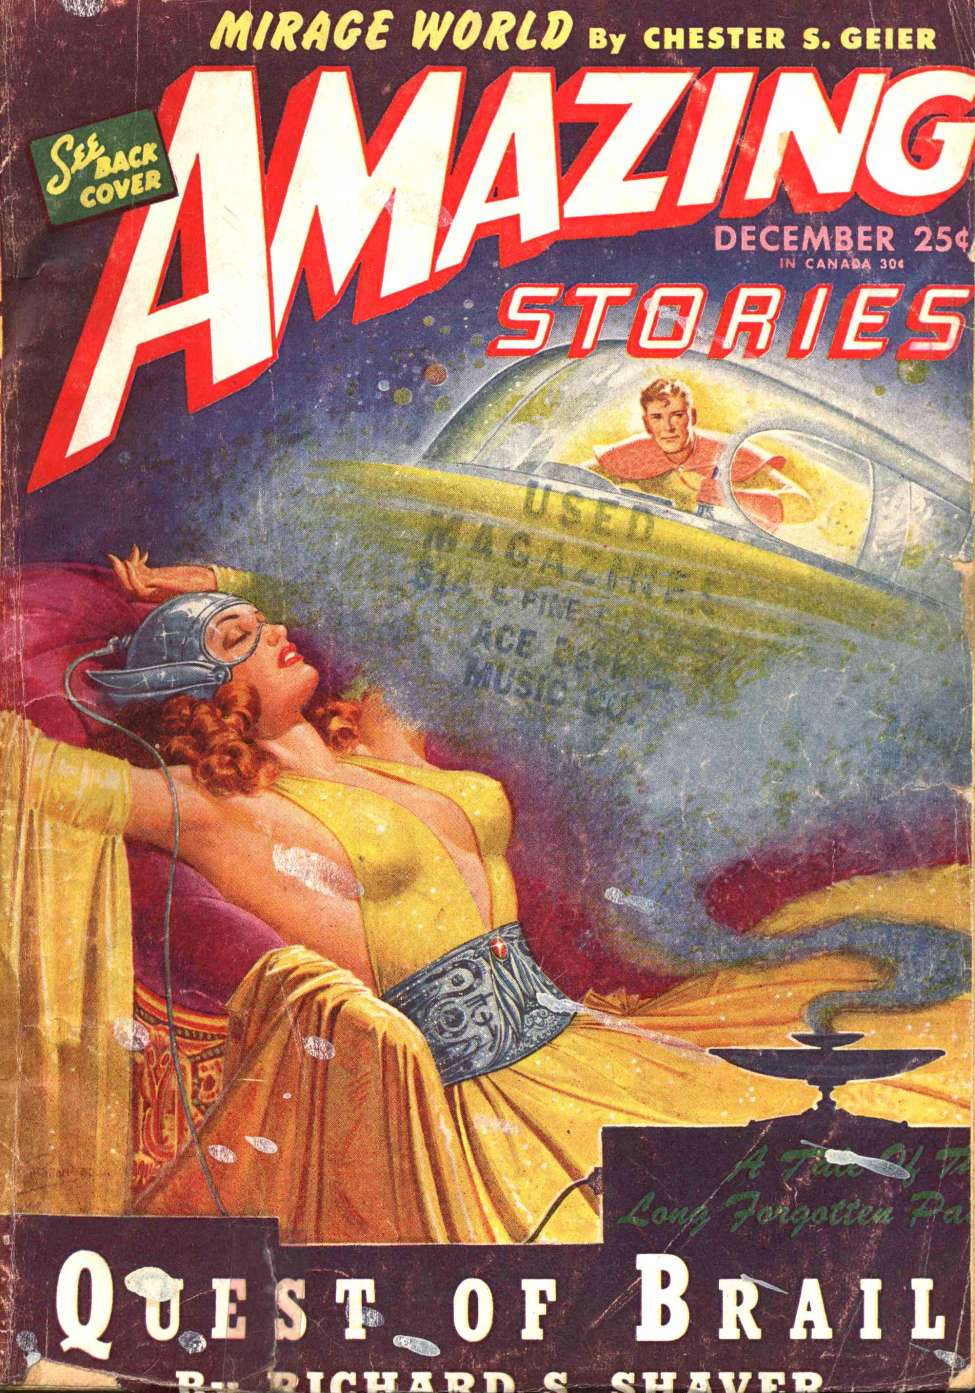 Comic Book Cover For Amazing Stories v19 04 - Quest of Brail - Richard S. Shaver